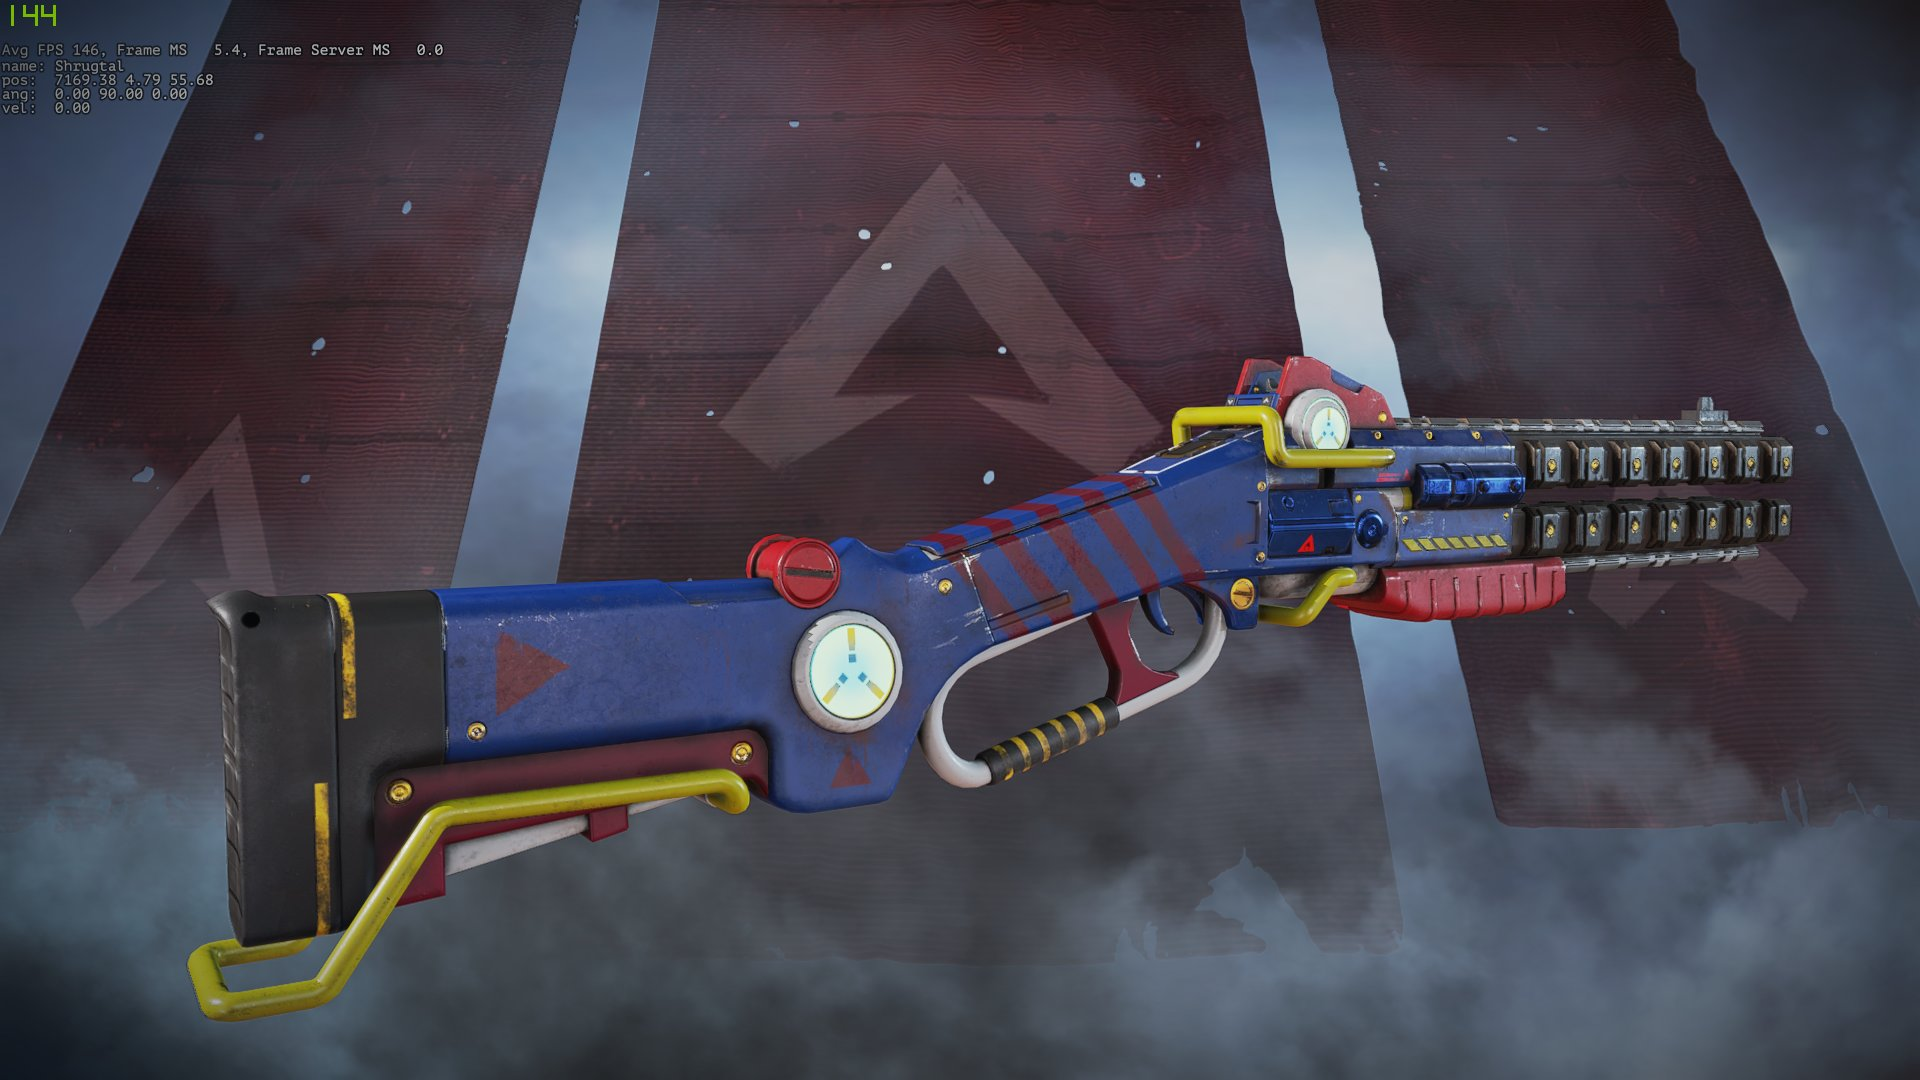 Clean Breach - Requires: The Demolisher recolor